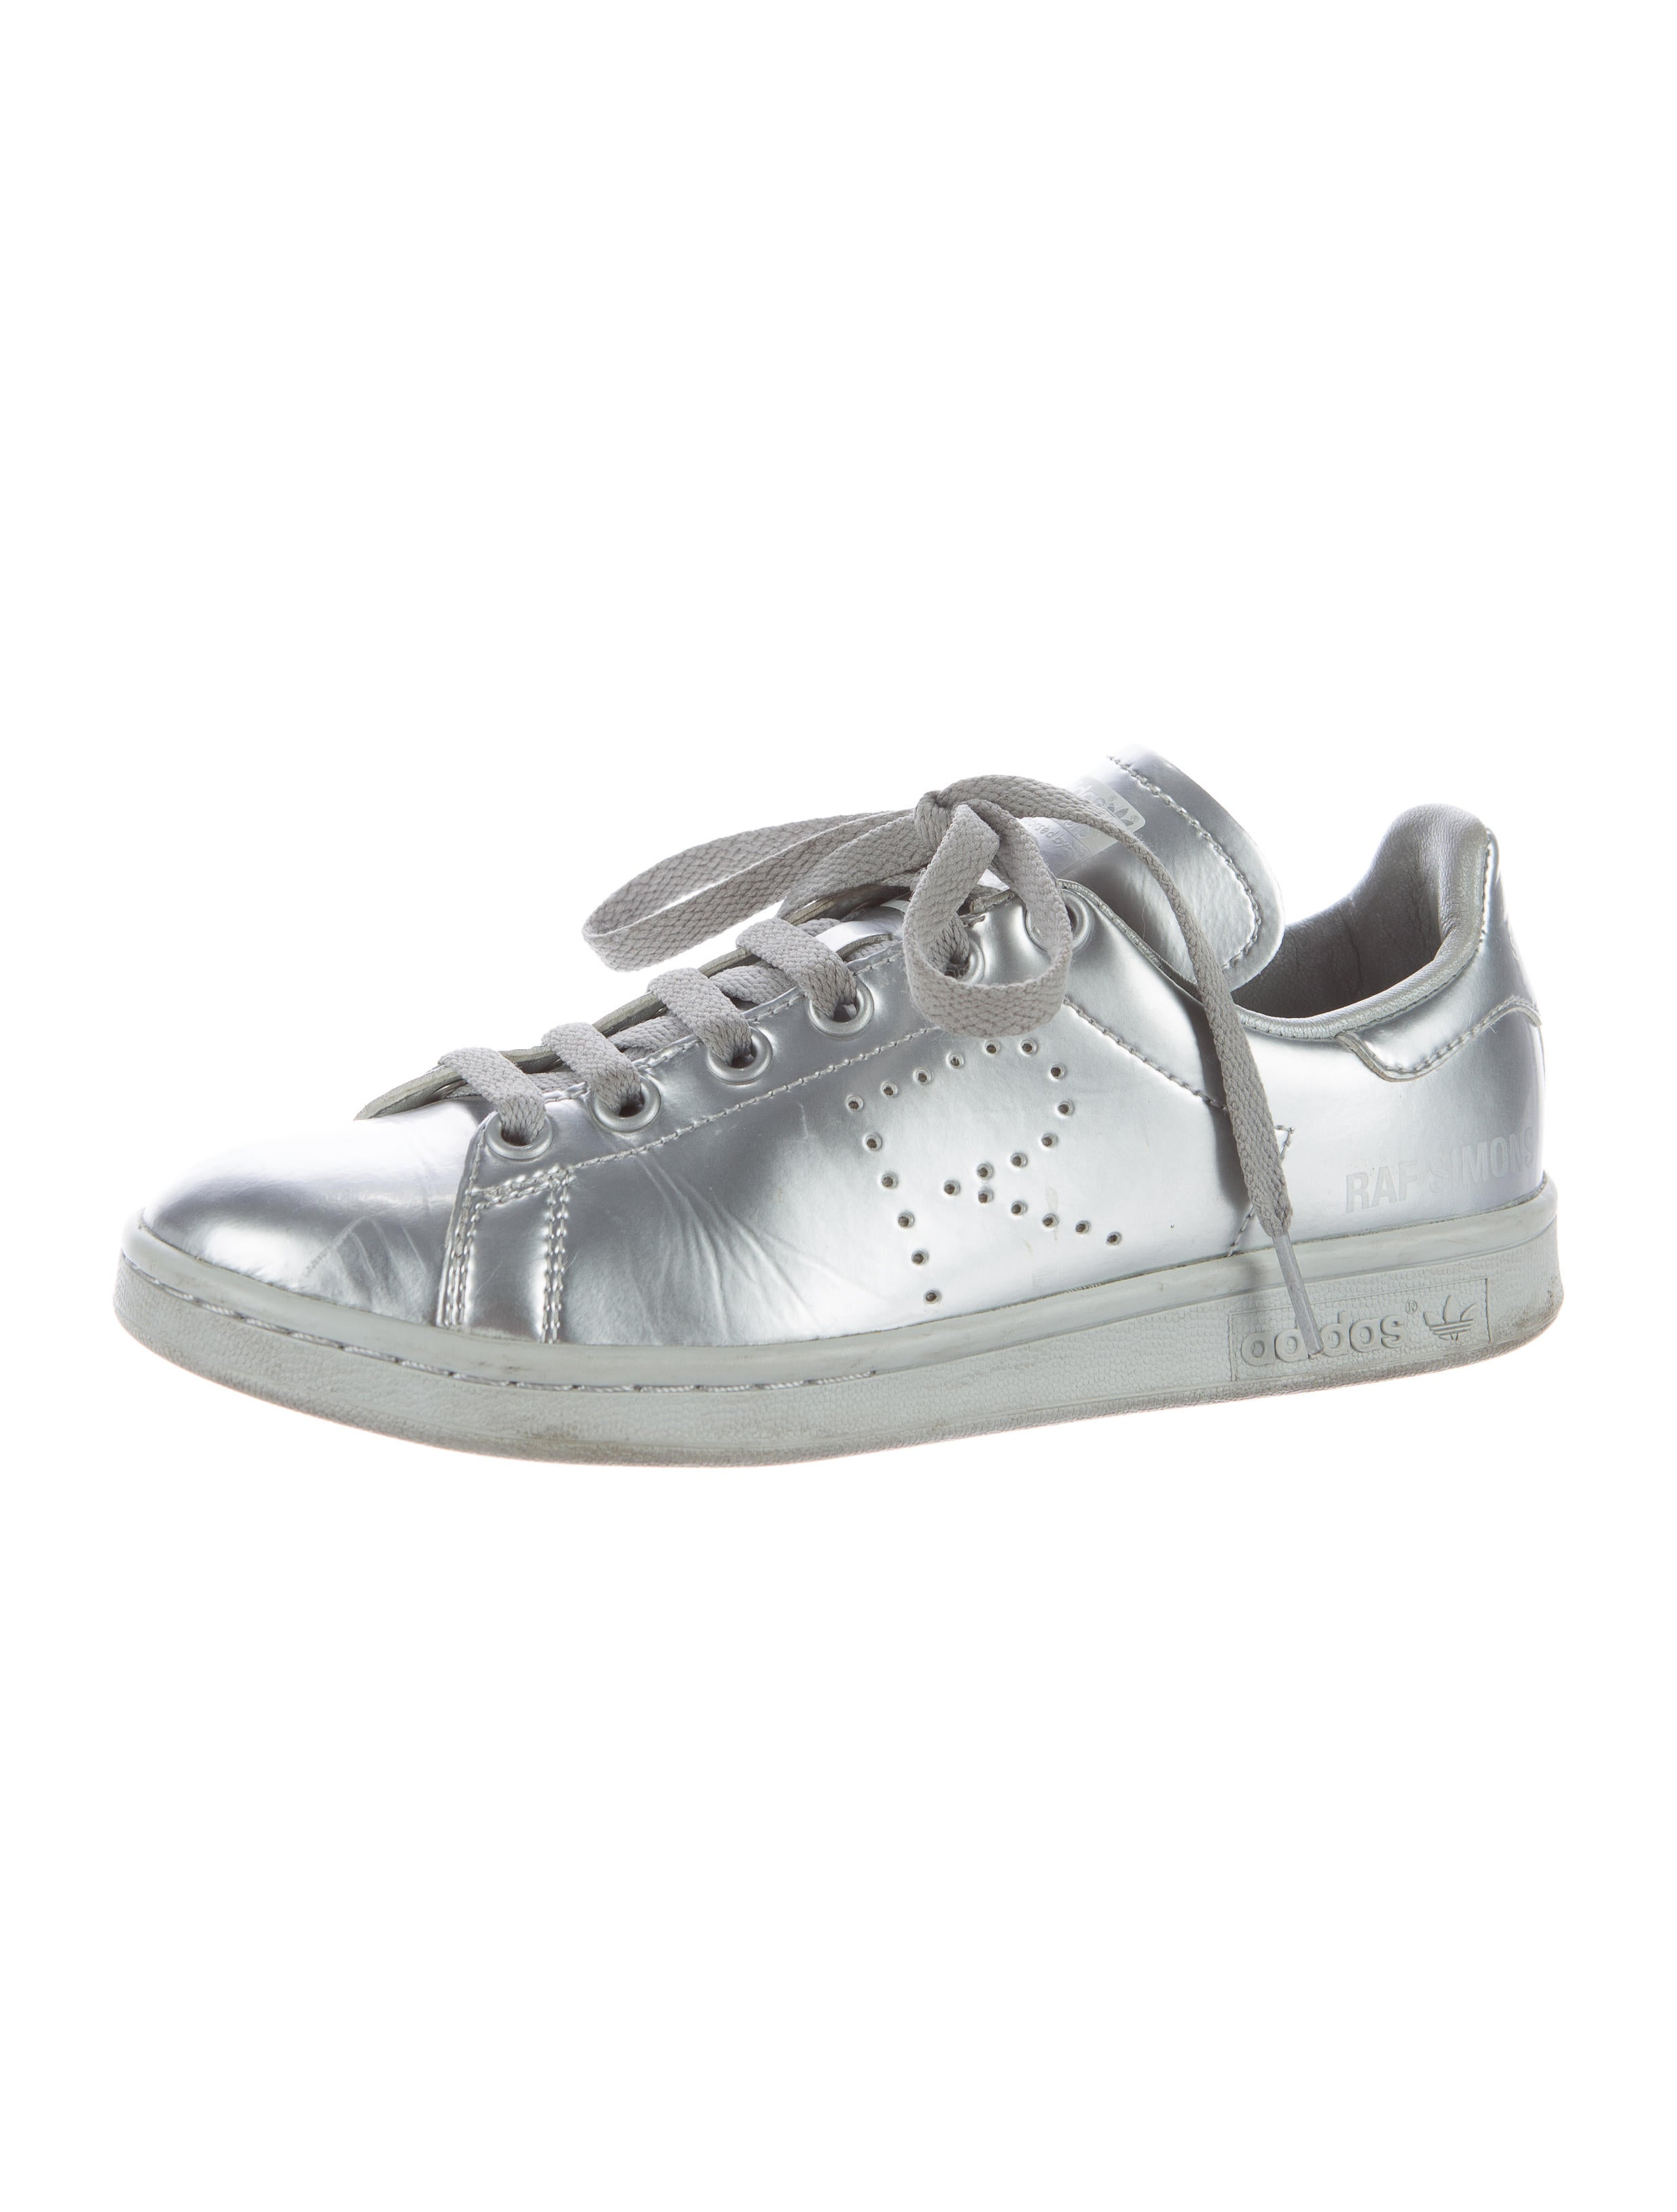 on sale 45f07 081be Raf Simons x Adidas 2016 Stan Smith Sneakers - Shoes .